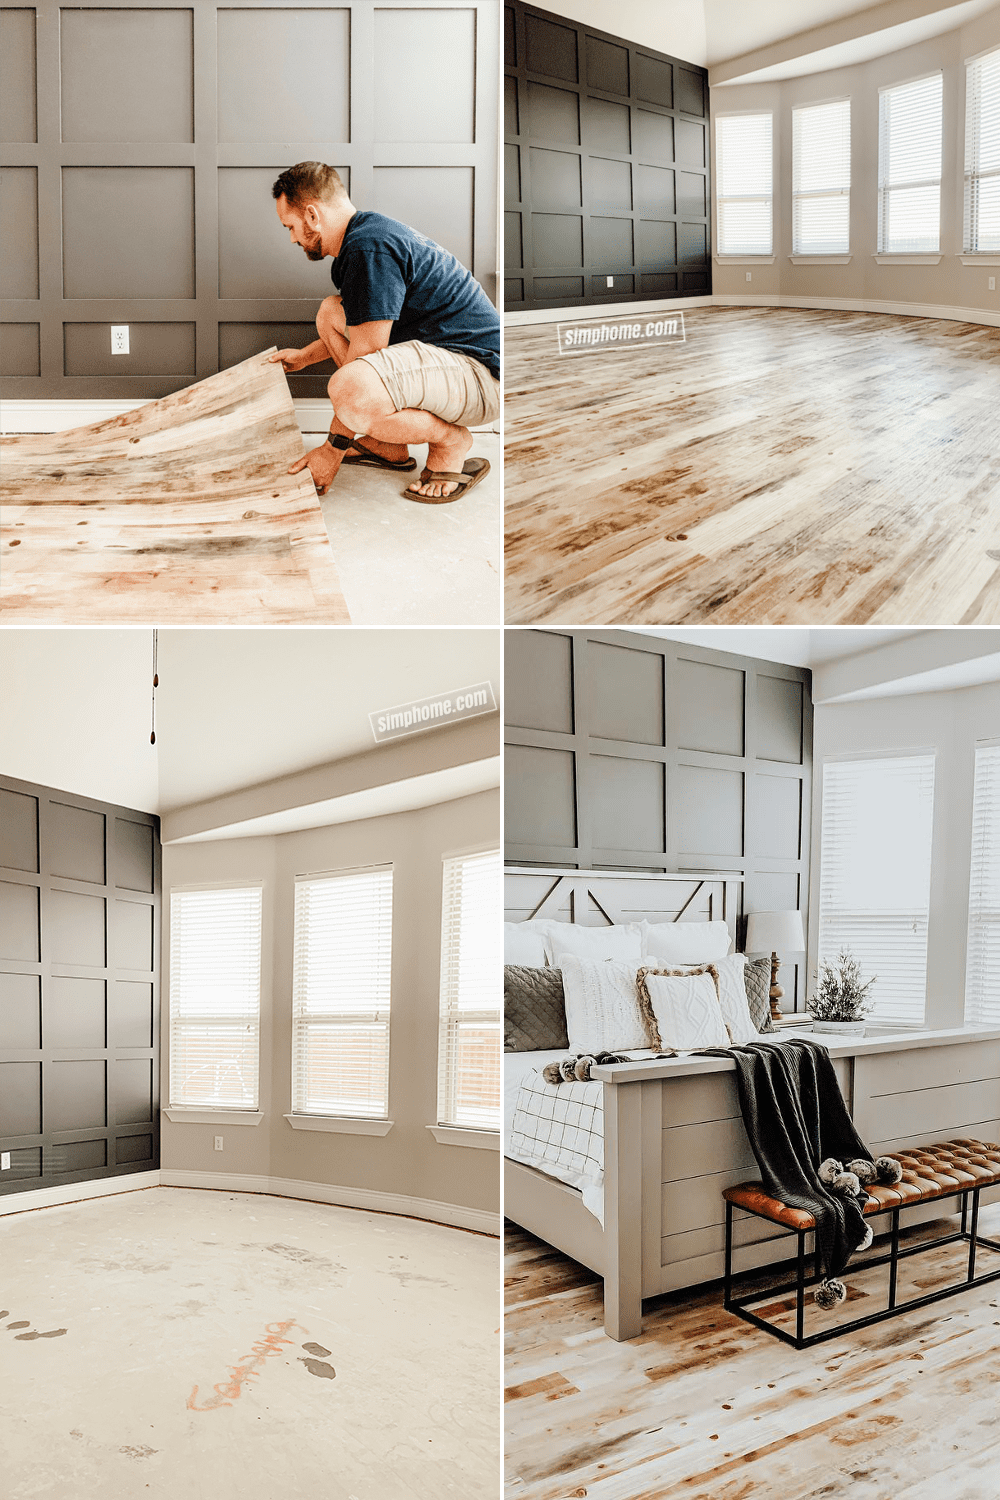 4 Bedroom Flooring Makeover Ideas - Simphome